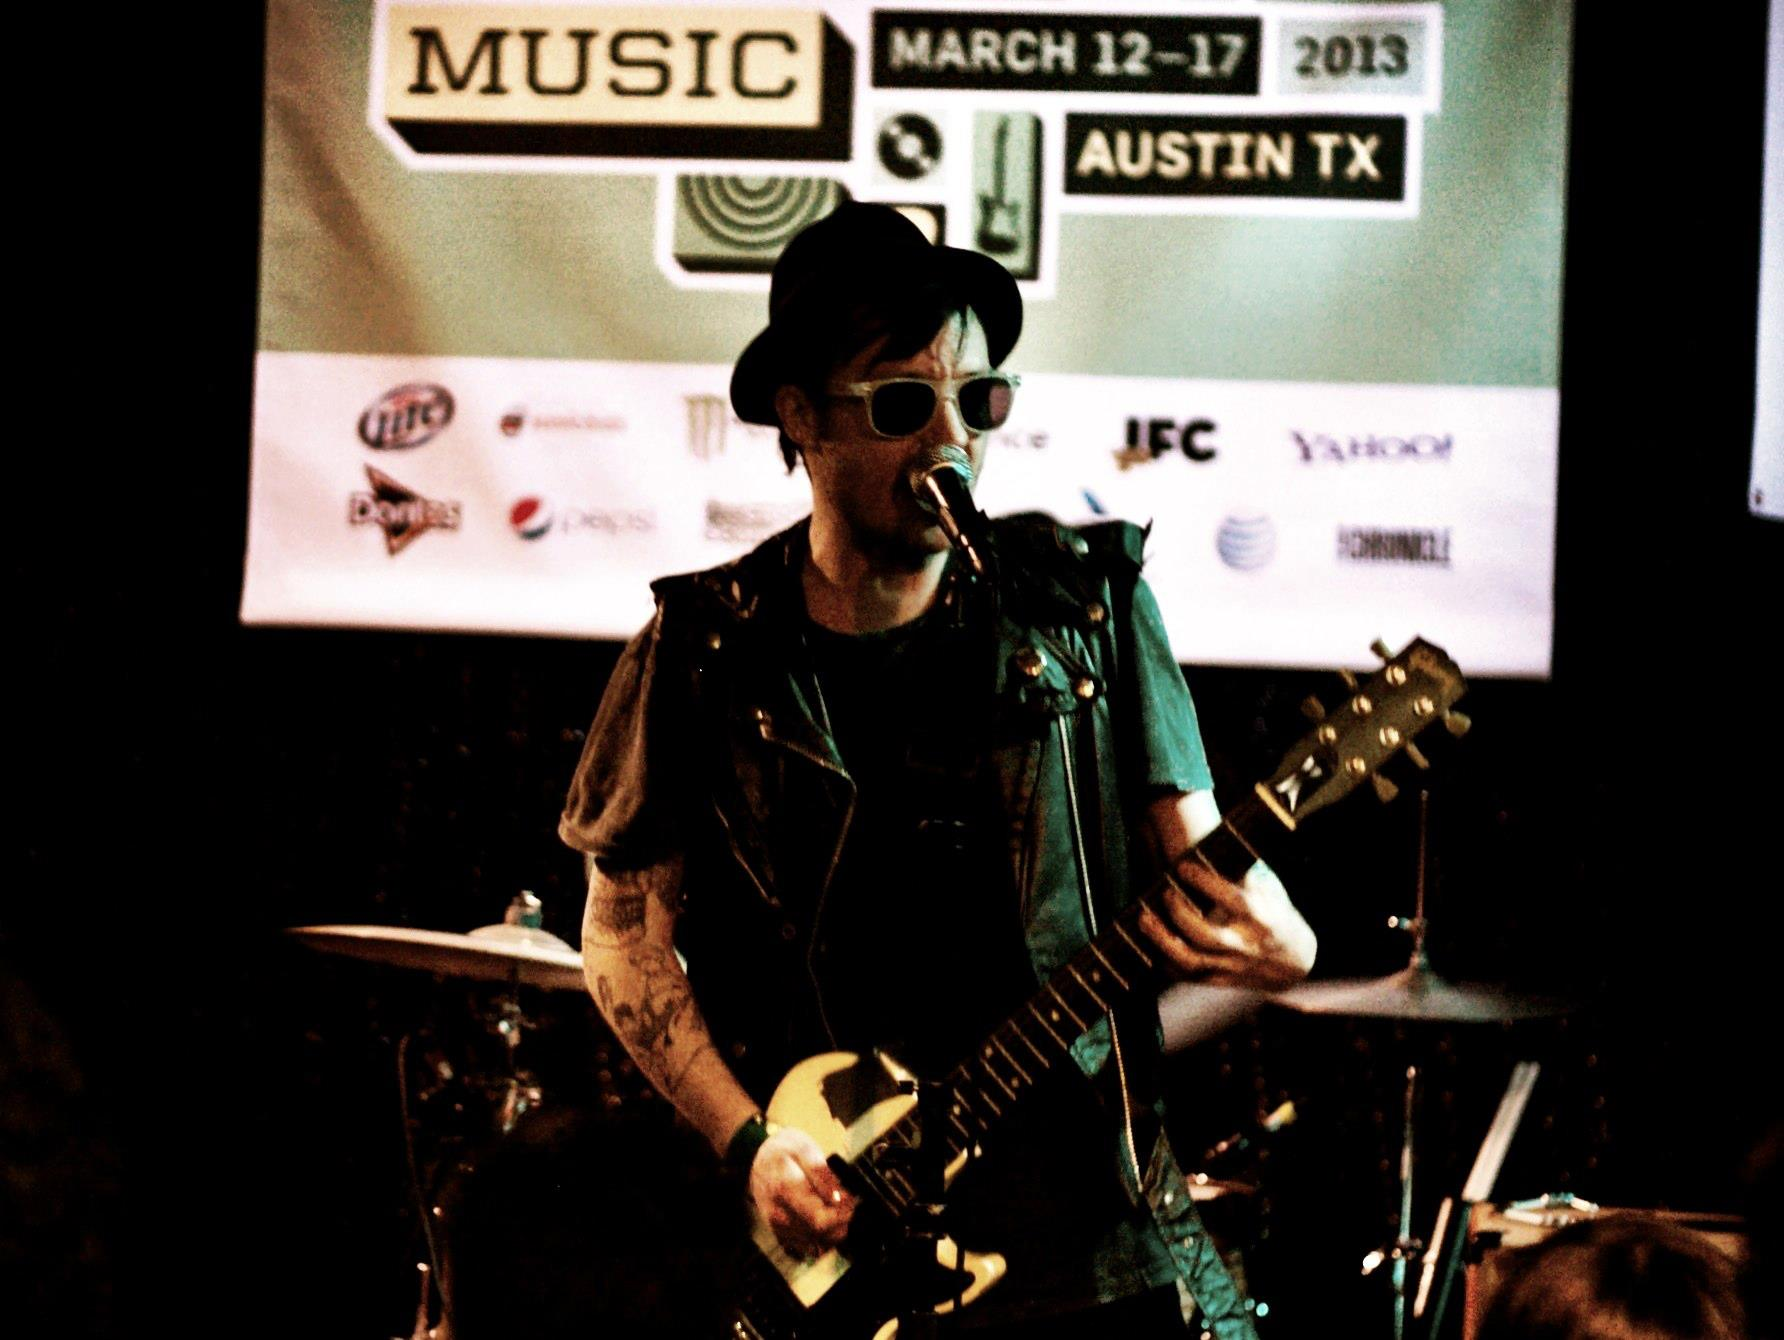 The Death set live at SXSW